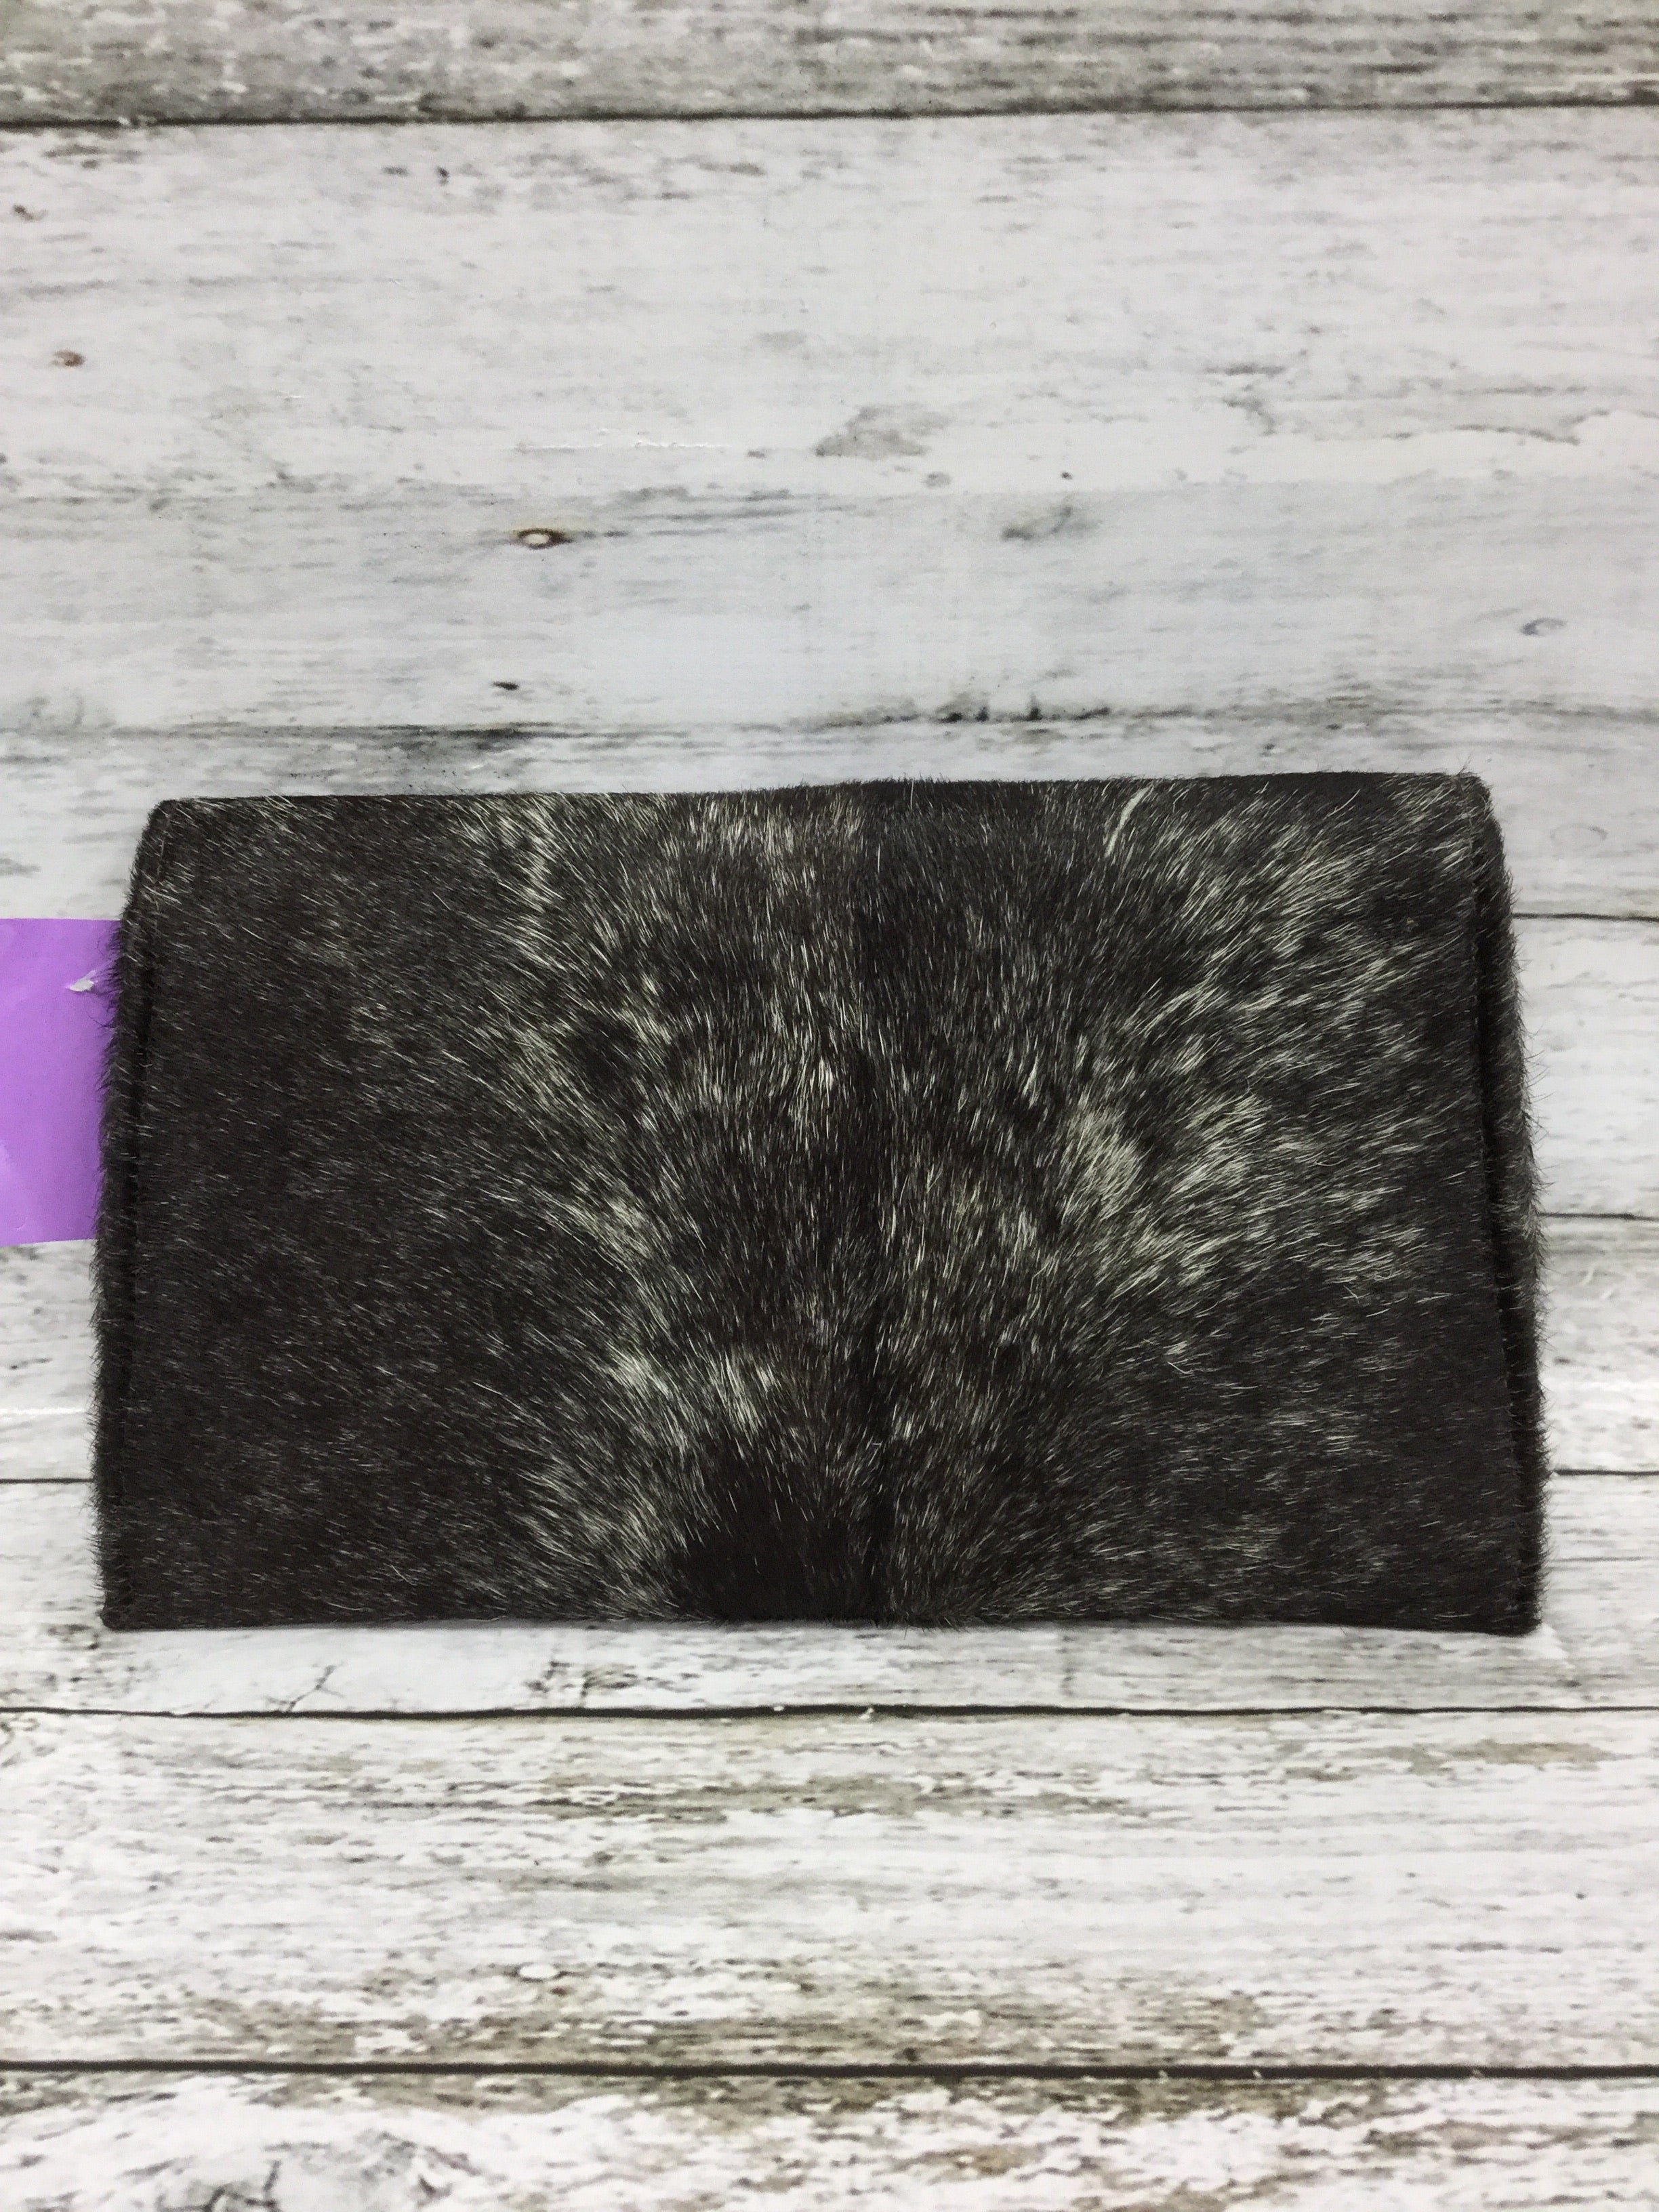 Photo #3 - BRAND:    CMD , STYLE: CLUTCH , COLOR: ANIMAL PRINT , OTHER INFO: JACKSON AND HYDE - , SKU: 127-4942-3369, , THIS CLUTCH IS HAIR-ON COWHIDE EXTERIOR WITH BLUE SUEDE INSIDE. IT CLOSES MAGNETICALLY. IT'S IN GREAT CONDITION AND COMES WITH A SLEEPER BAG!